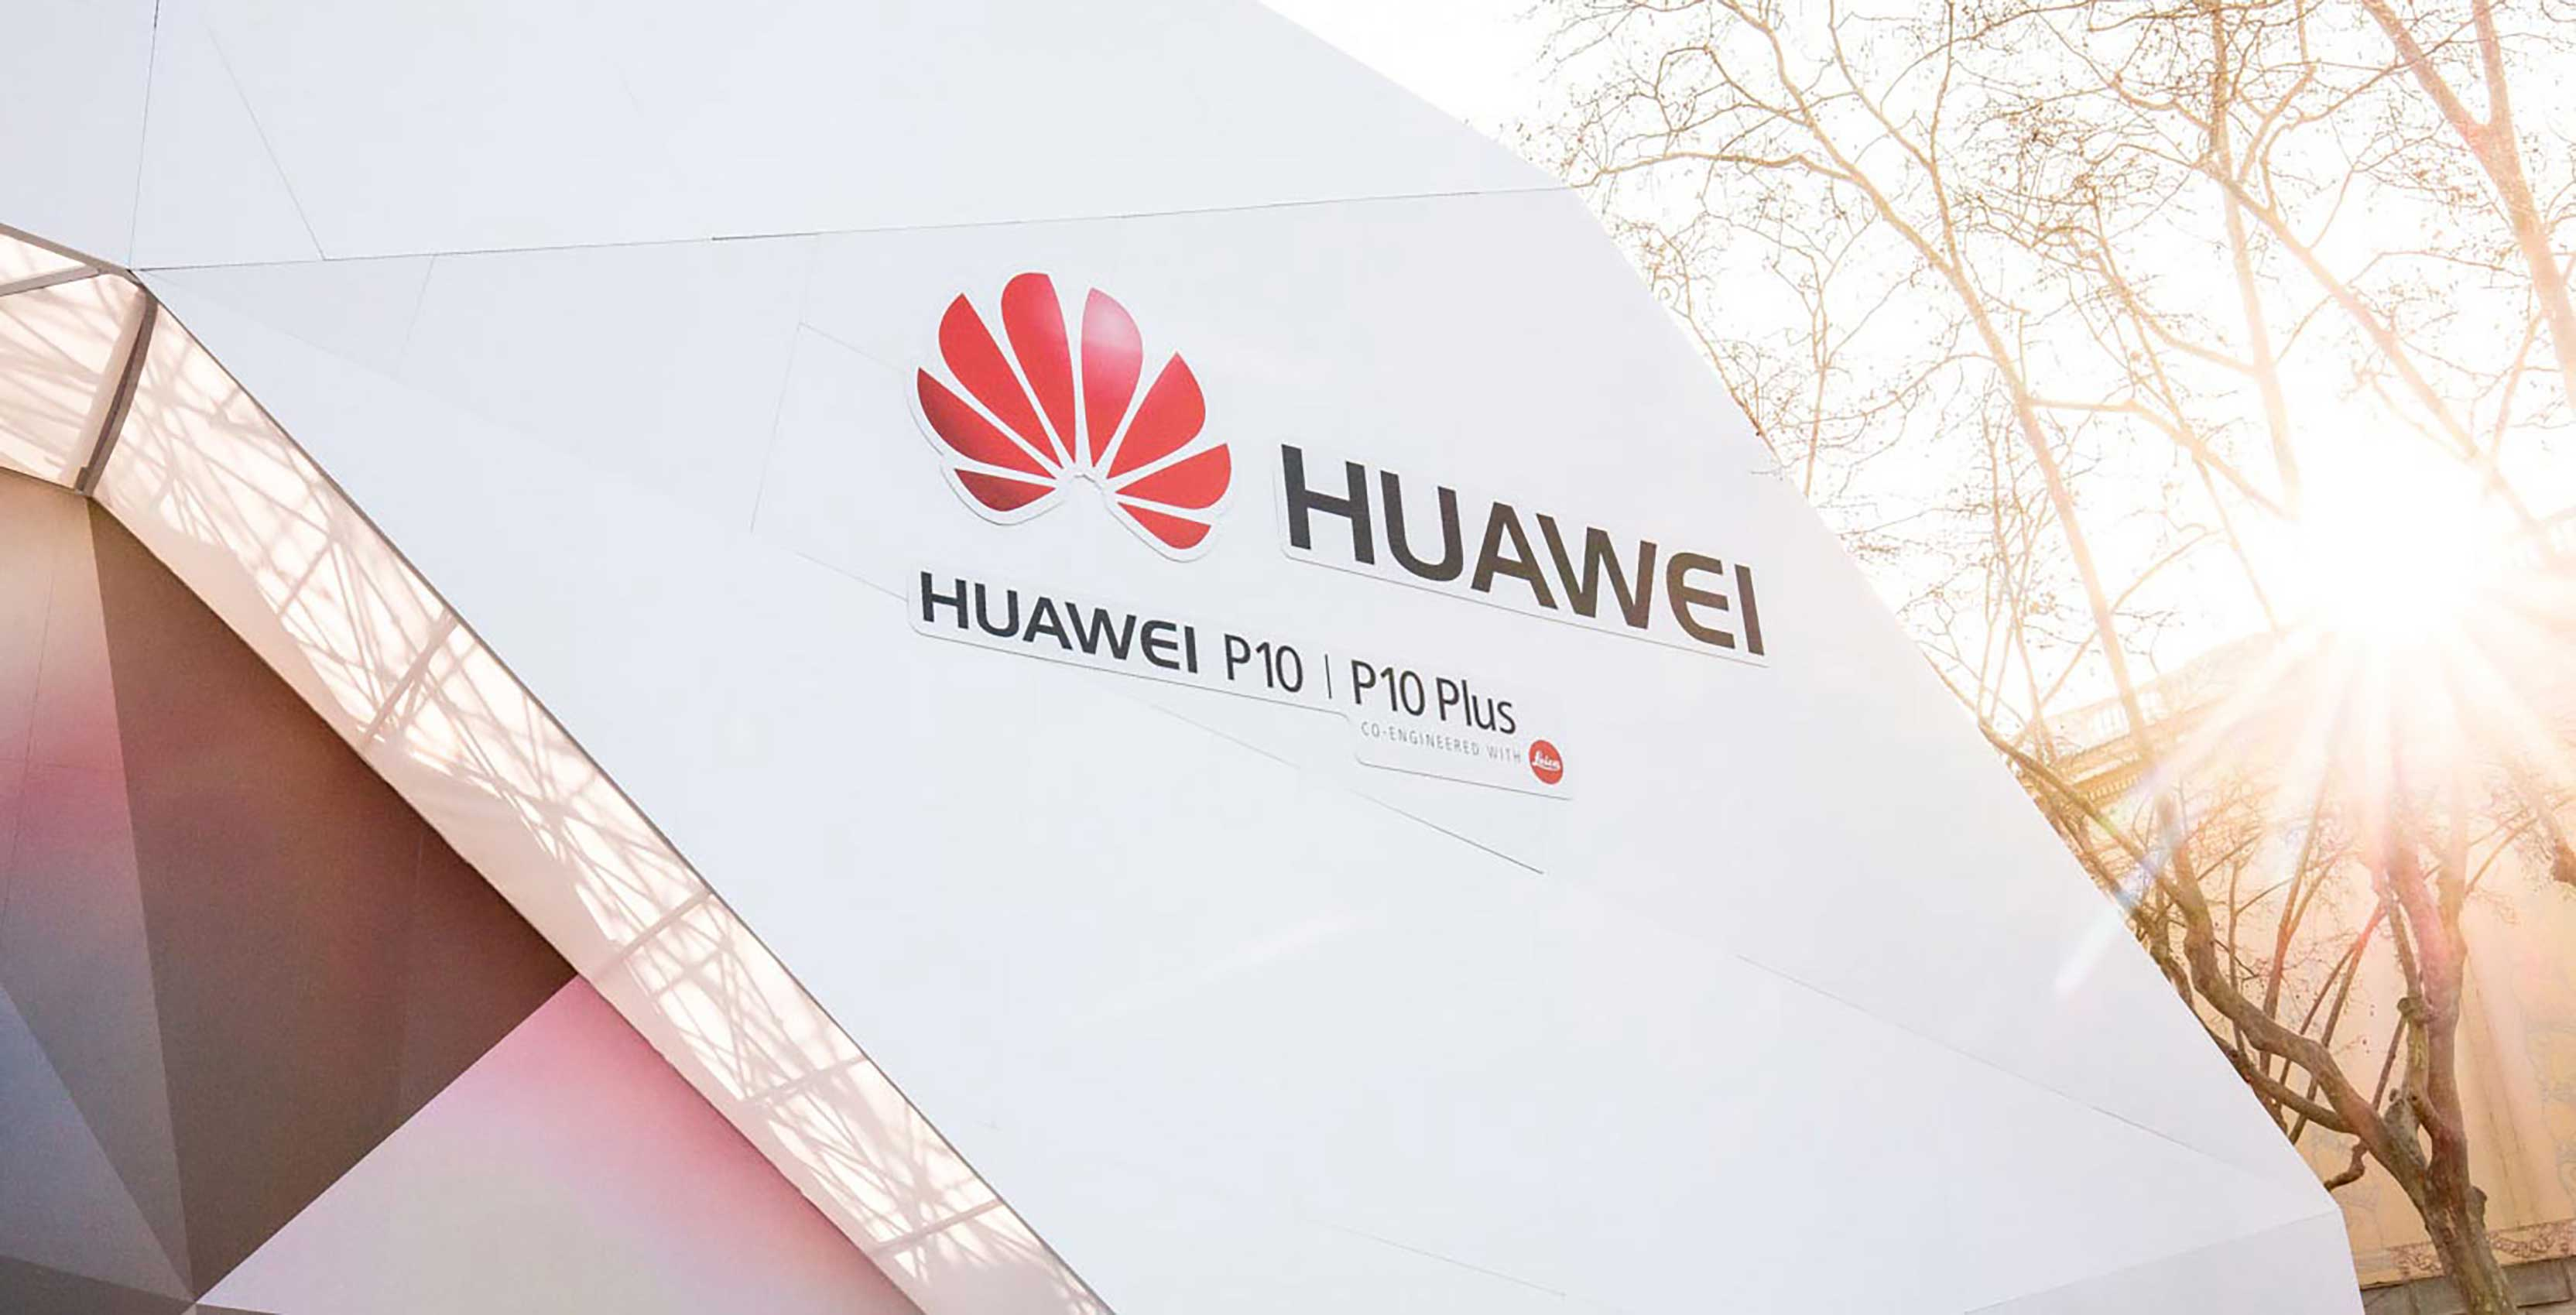 Huawei launch event banner